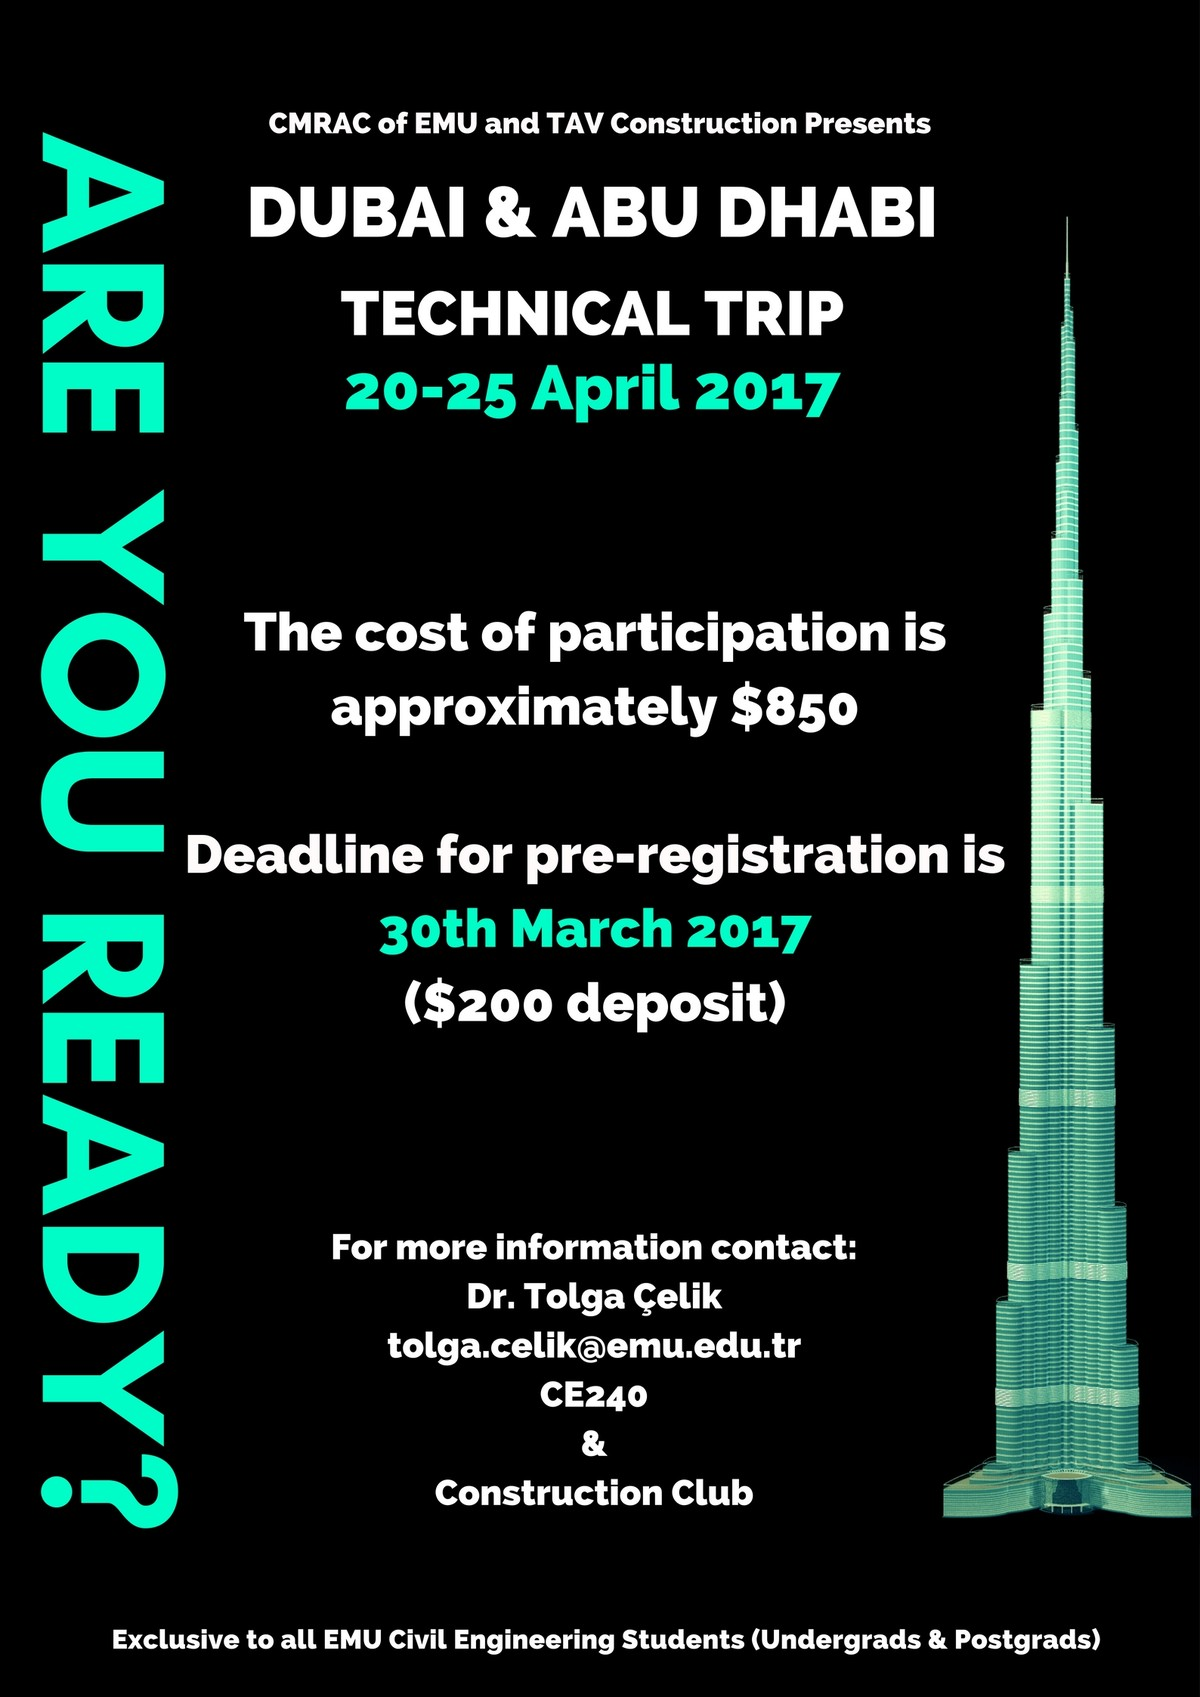 Dubai & Abu Dhabi Technical Trip Announcement